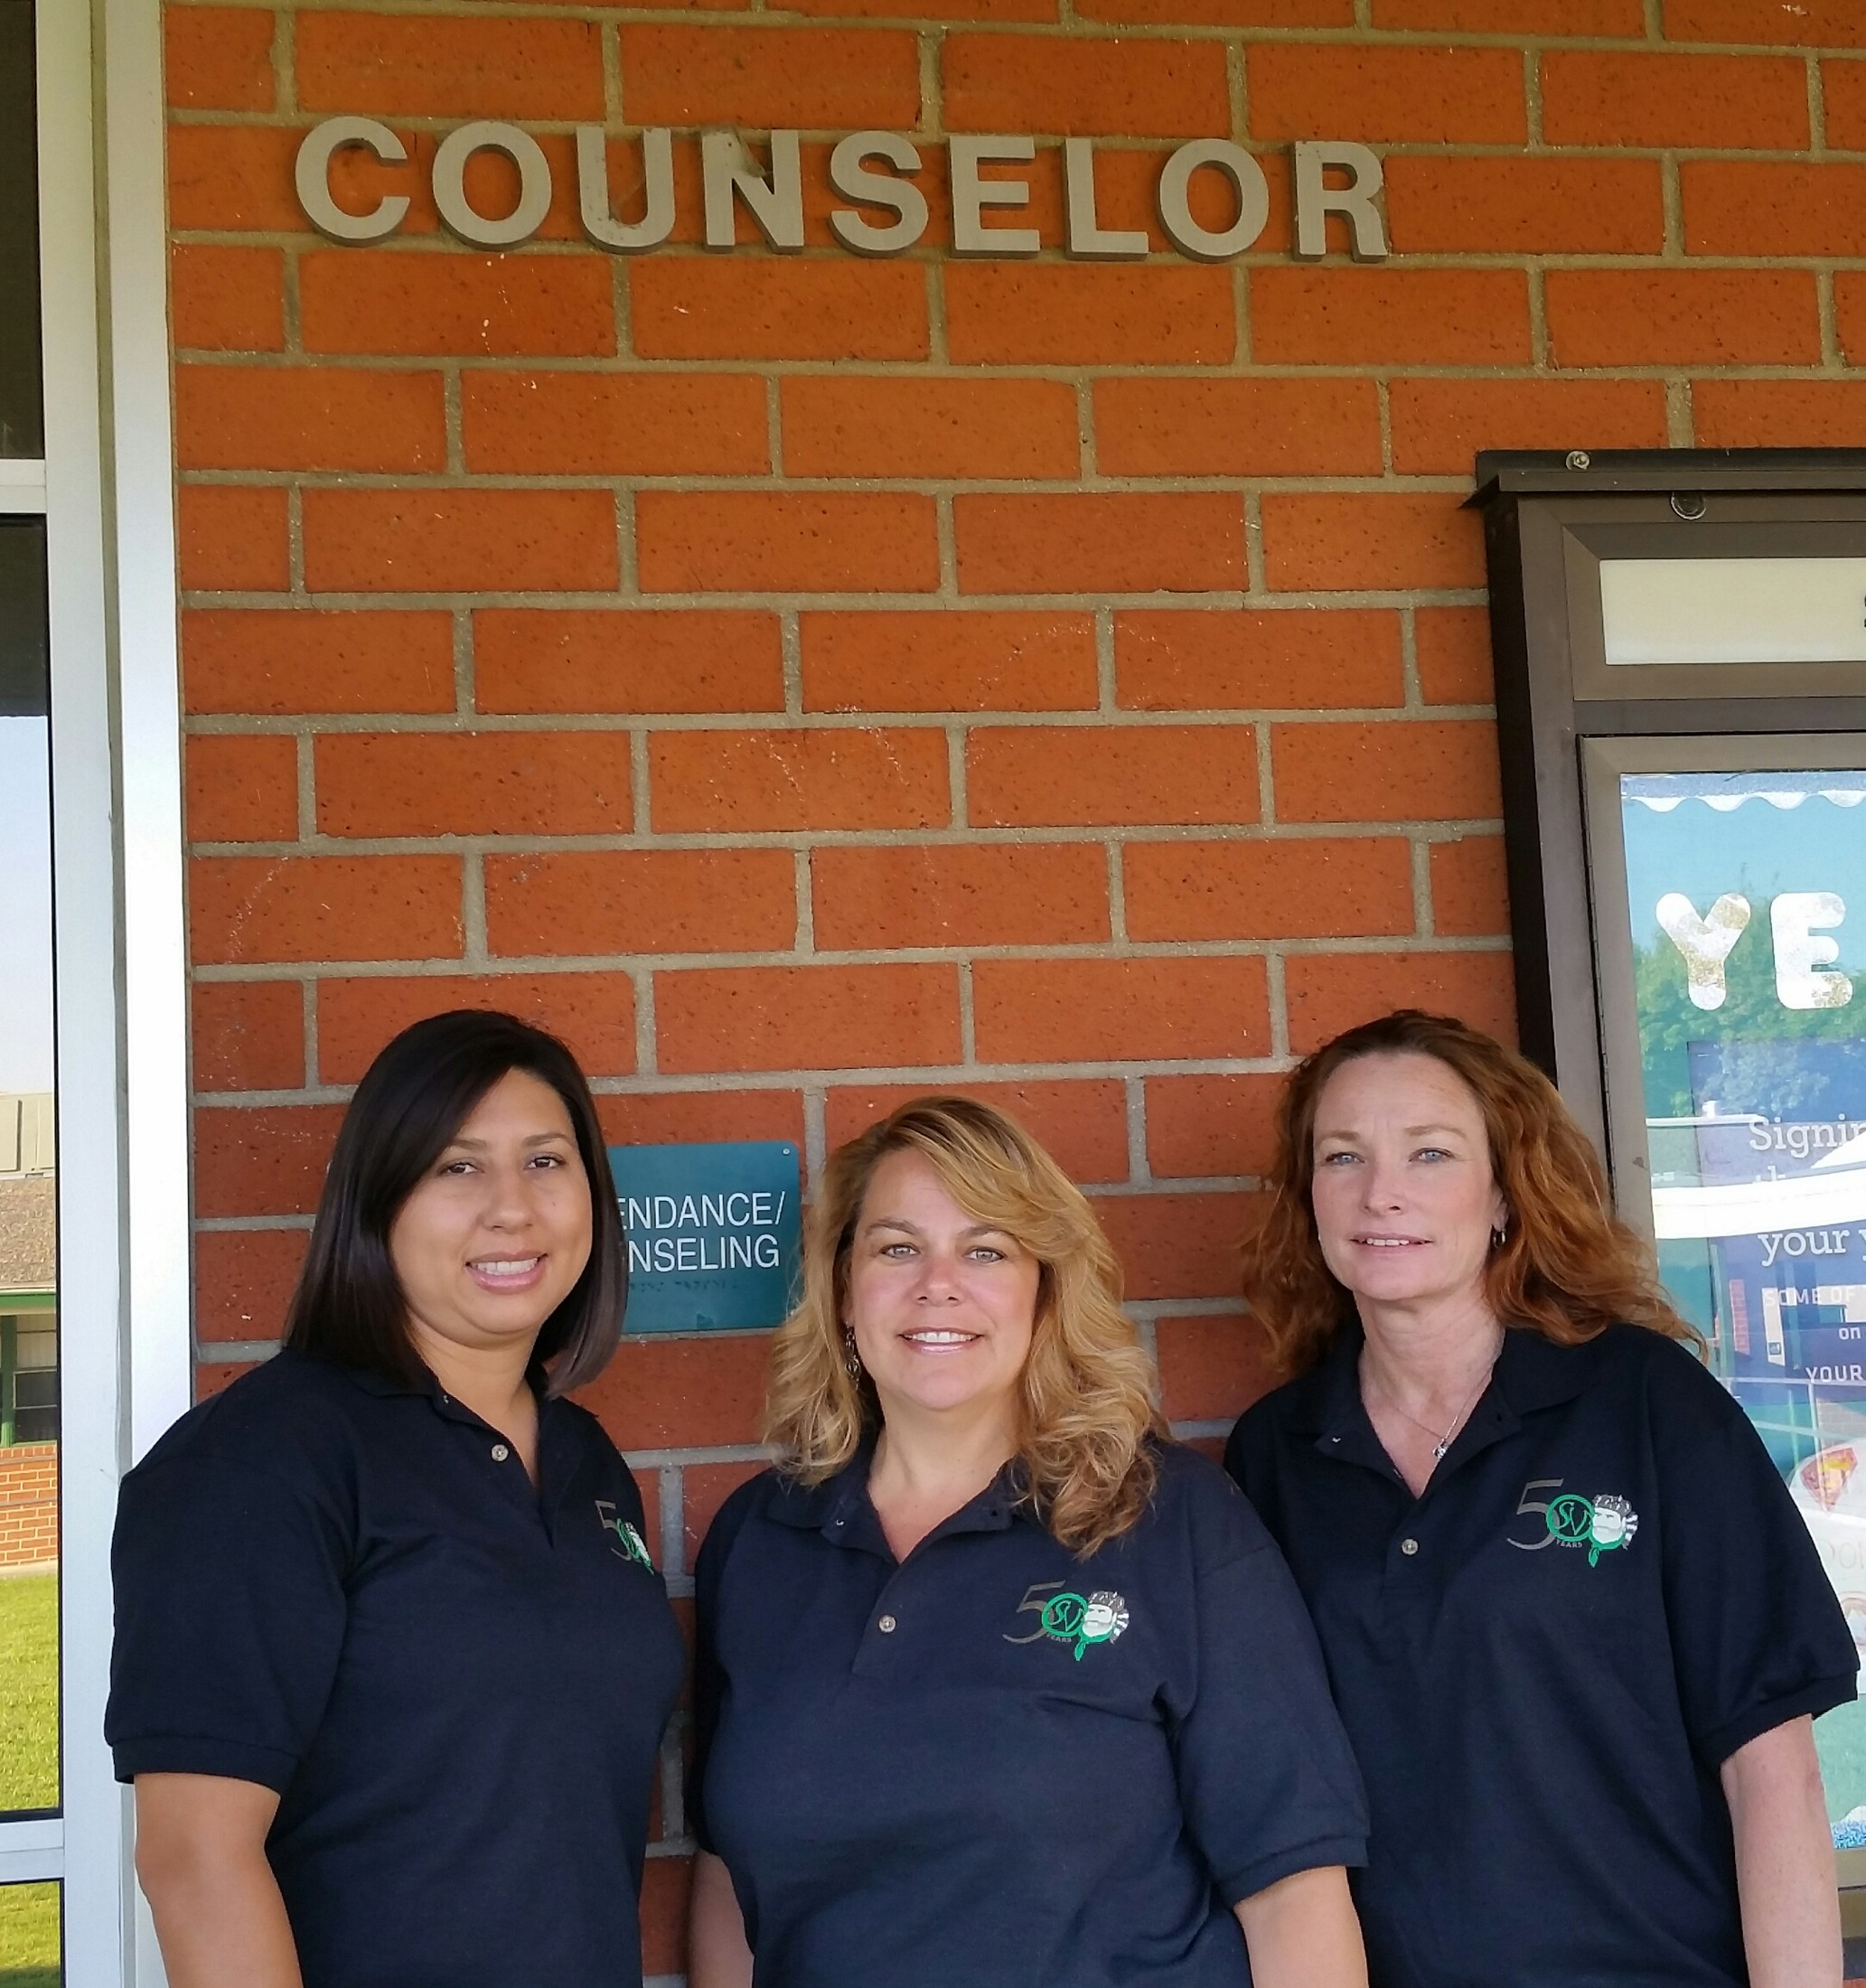 Mrs. Knolls, Mrs. Saunders, and Ms. Roth